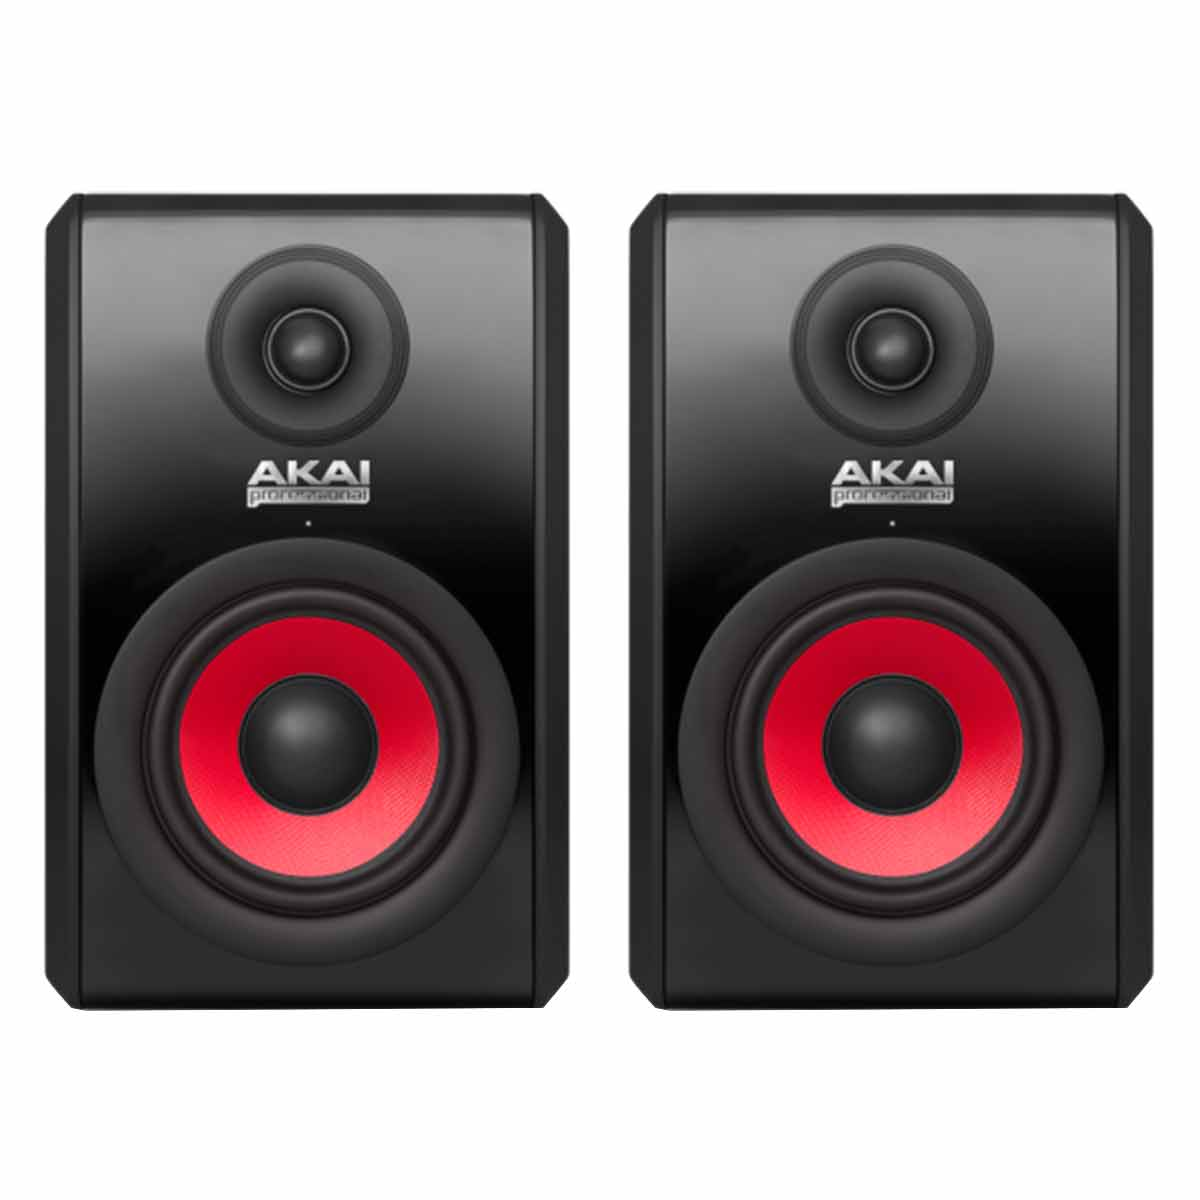 RPM500RED - Monitor de Refer�ncia 90W RPM 500 RED ( PAR ) - AKAI